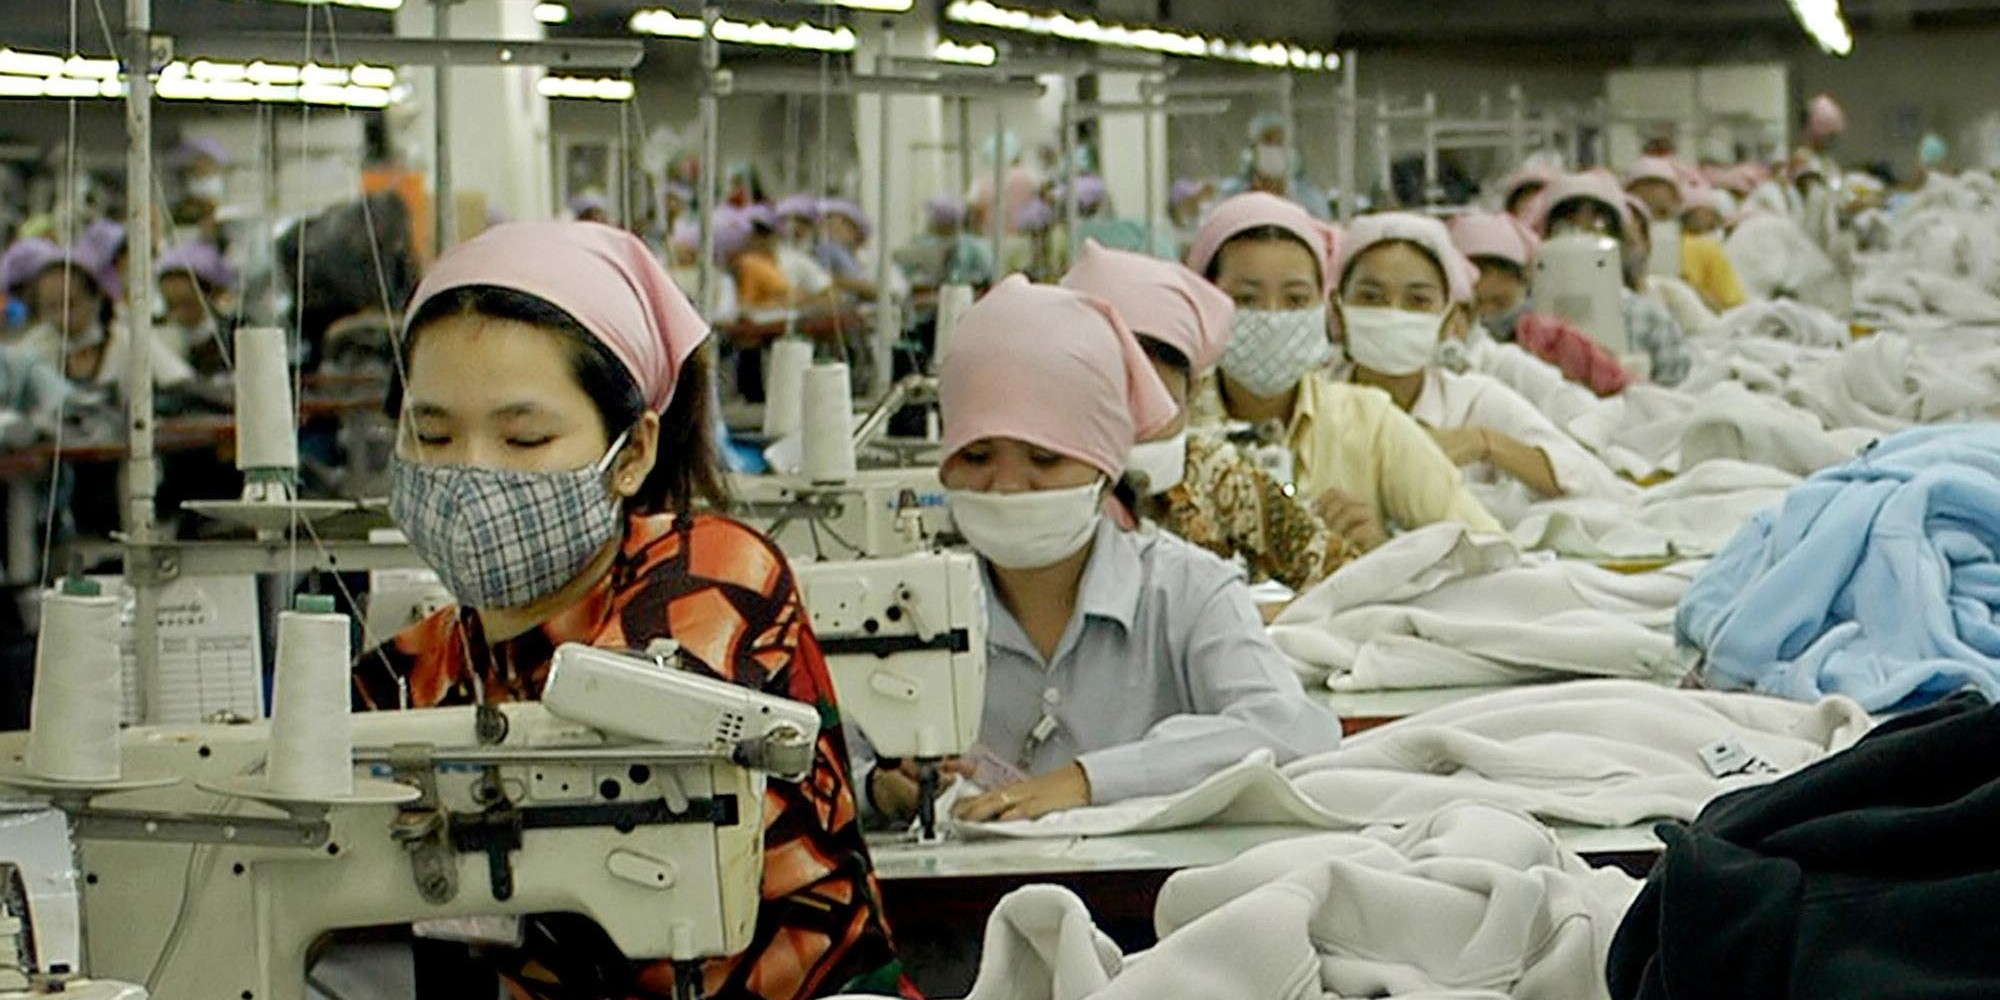 Cambodian garment factory workers toil at the W&D garment factory, just southeast of Phnom Penh, April 28, 2004. Cambodia's garment industry has grown from 49 factories in 1996 to more than 200 factories today, employing 240,000 people. But as the end approaches for a special deal between the United States and Cambodia linking labor rights to trade quotas the workers are worried for their futures. (AP Photo/Isabelle Lesser)